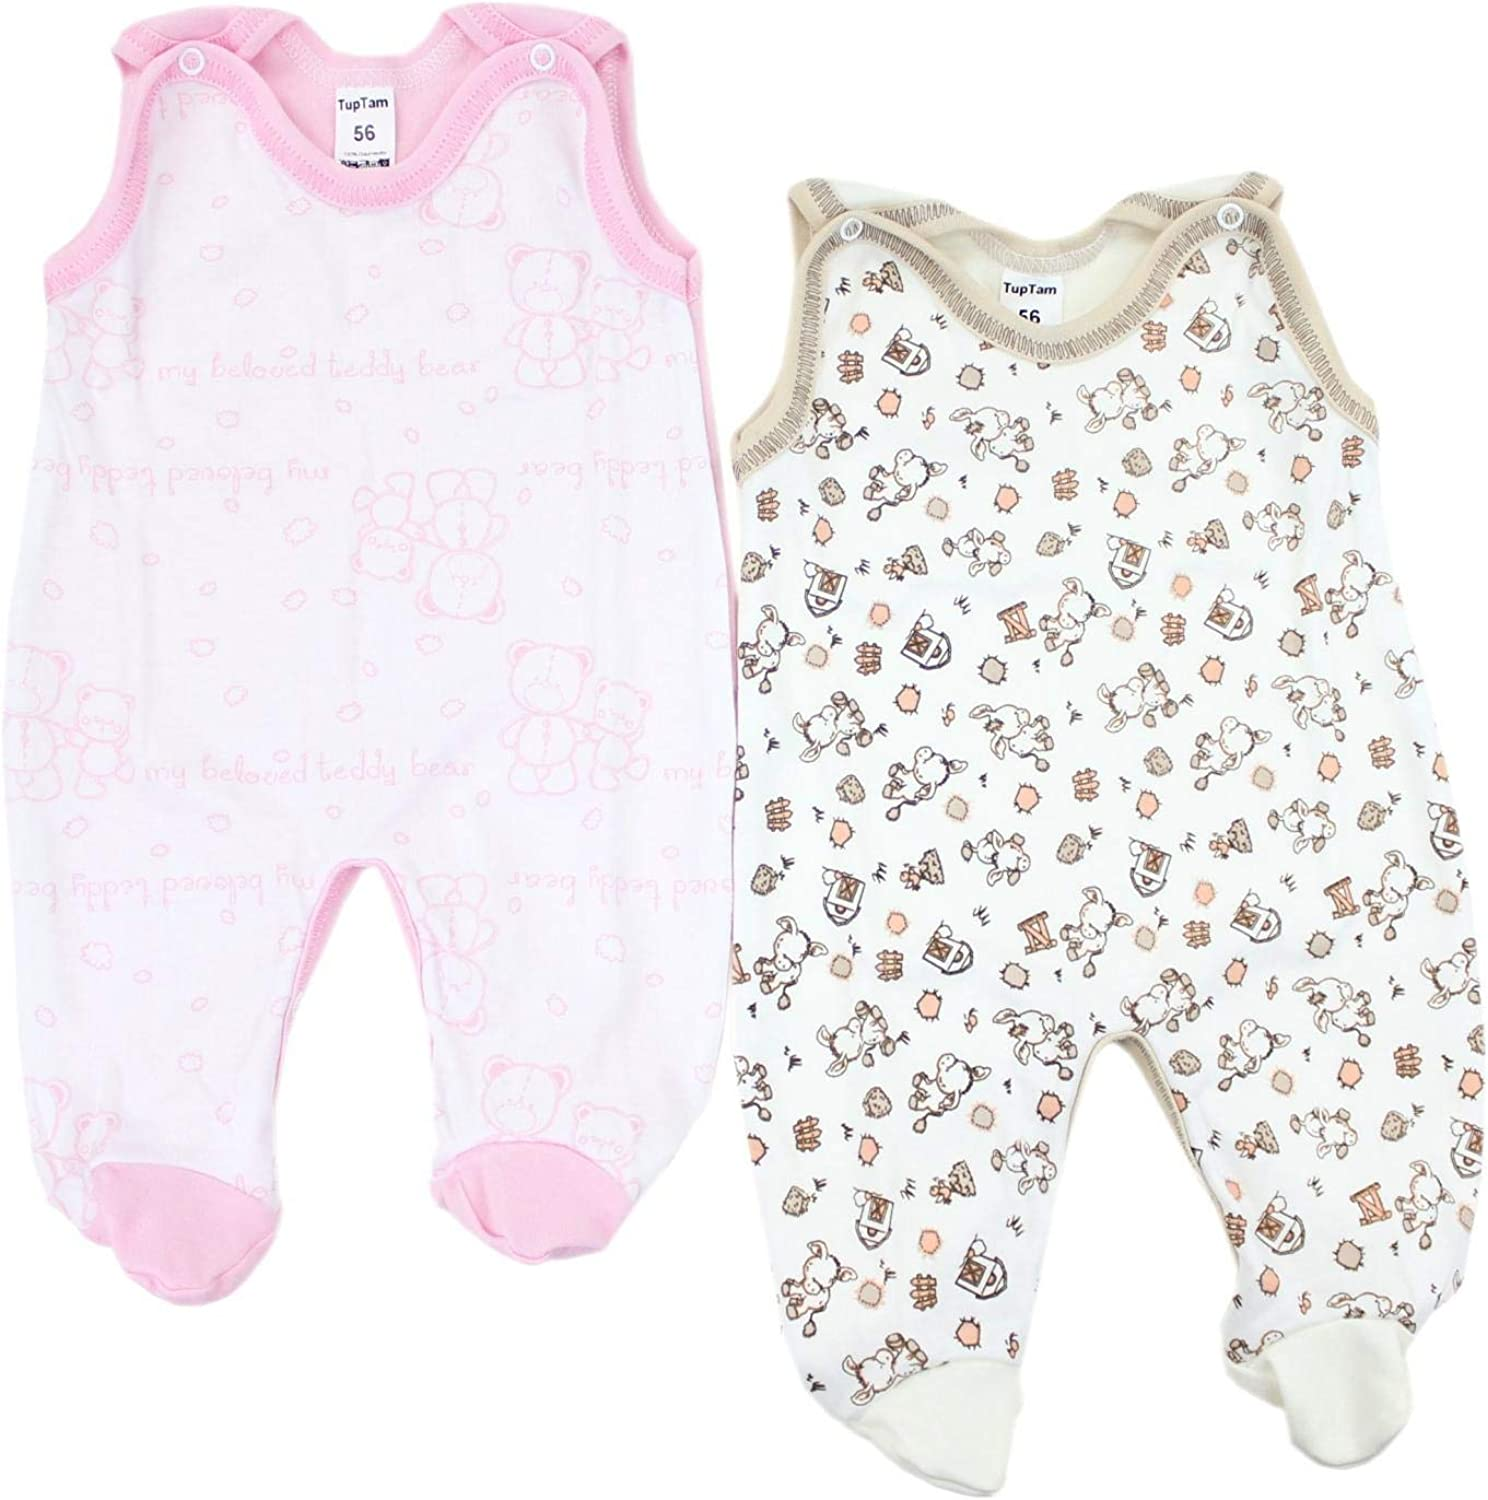 Pack of 5 TupTam Baby Romper Suit with Feet